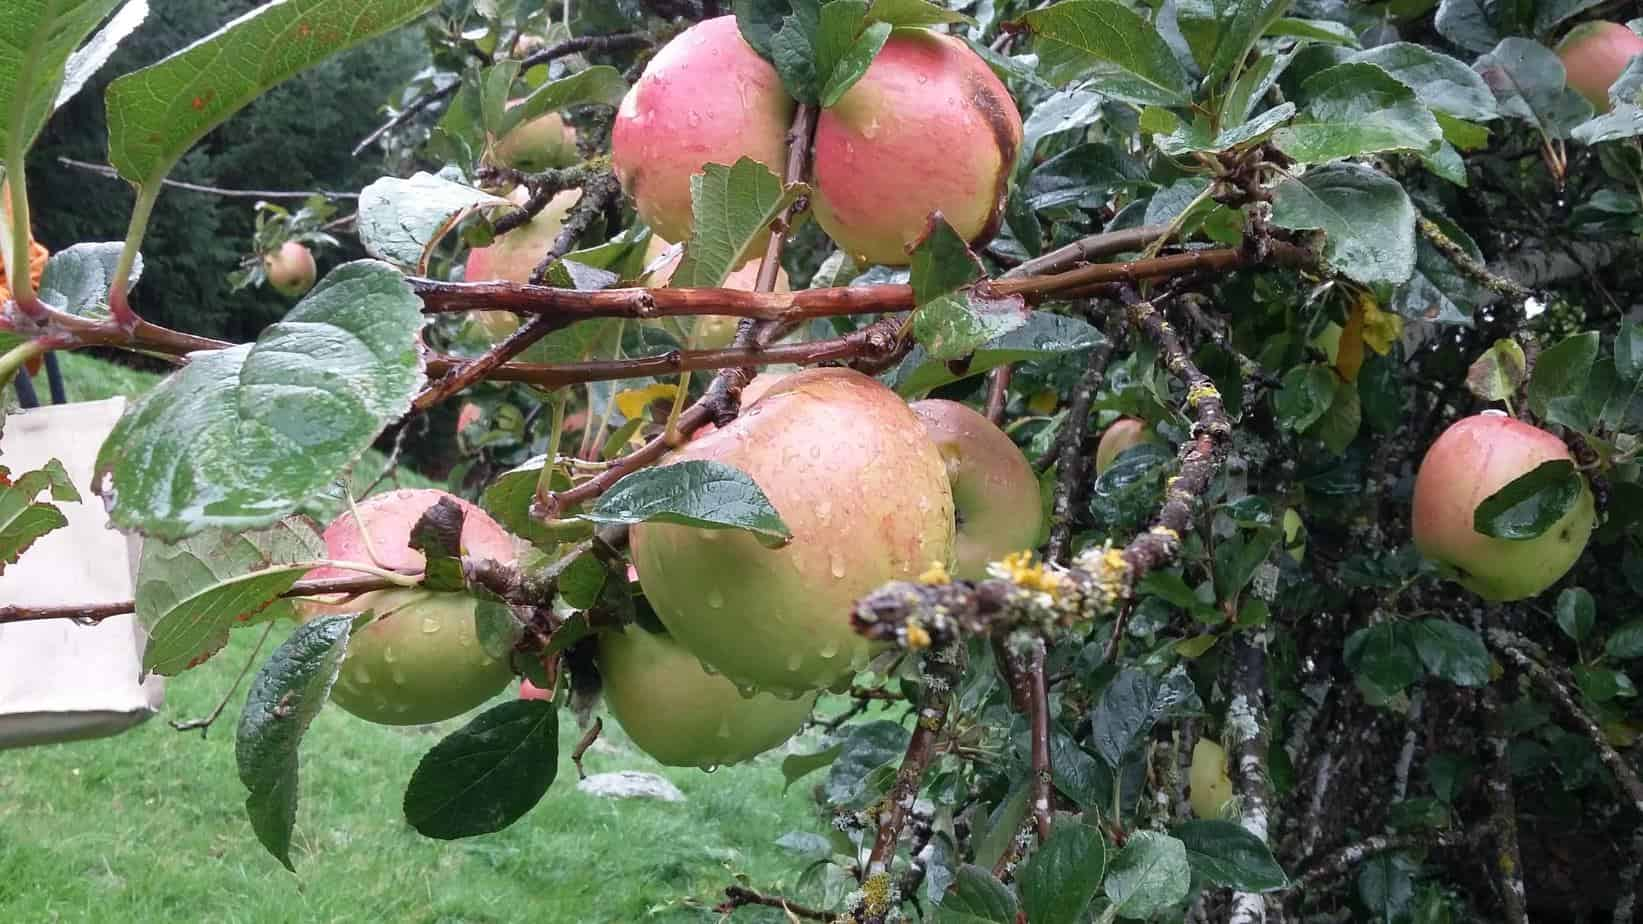 Apples on the tree on a rainy day.